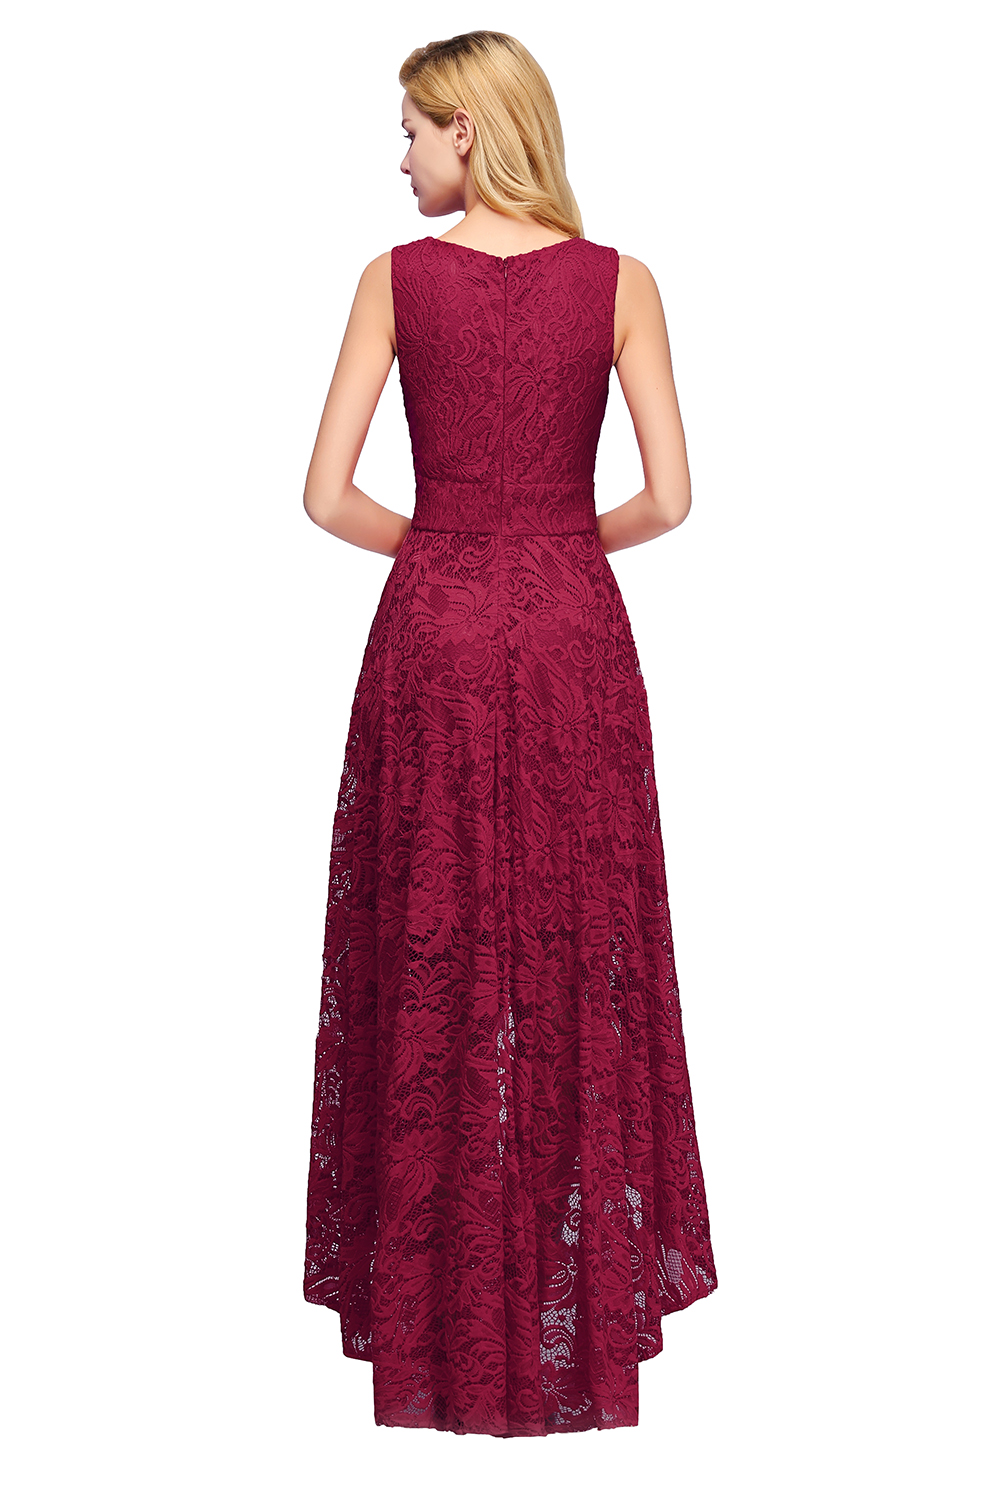 Elegant 2019 Burgundy Sexy Lace Short Evening Dress V Neck Sleeveless Evening Gown robe de soiree in Evening Dresses from Weddings Events